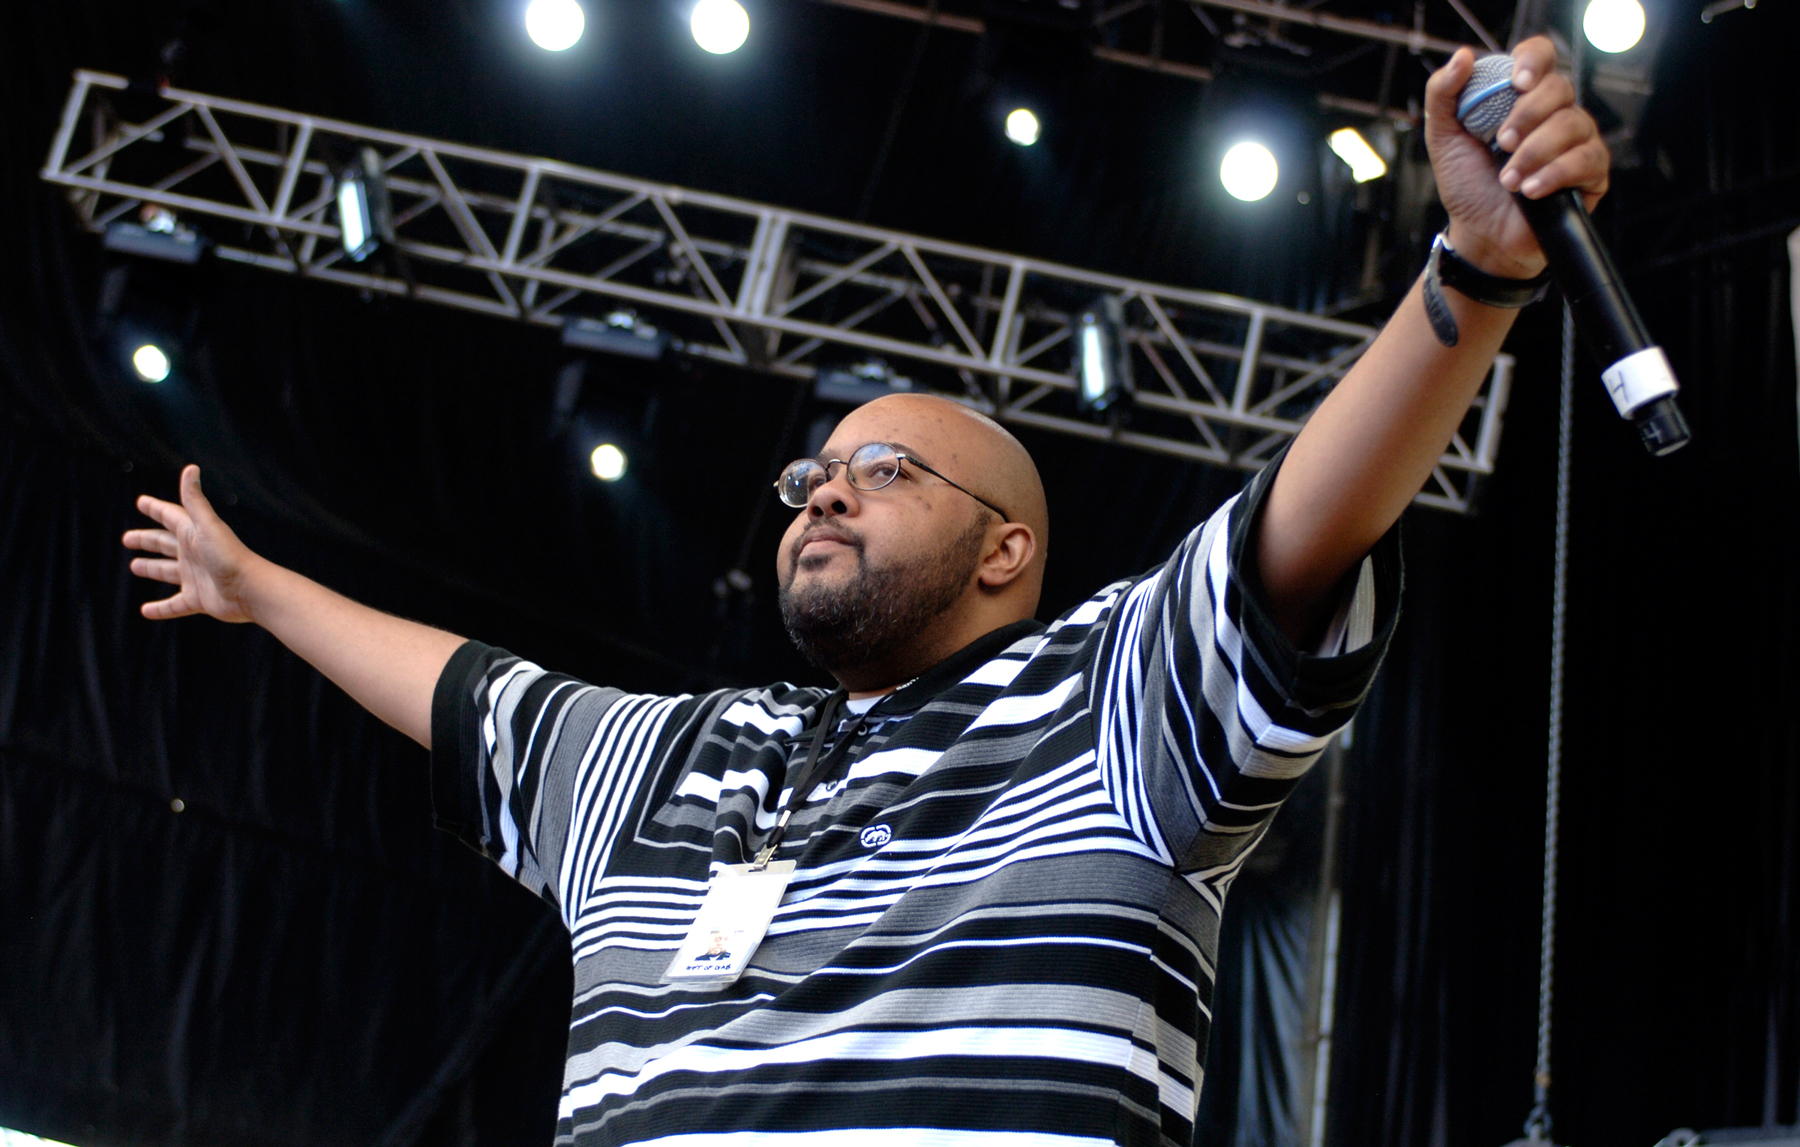 MOUNTAIN VIEW, CA - AUGUST 16: Gift of Gab of Blackalicious performs as part of the Rock the Bells Tour 2008 at Shoreline Amphitheatre August 16, 2008 in Mountain View, California. (Photo by Tim Mosenfelder/Getty Images)